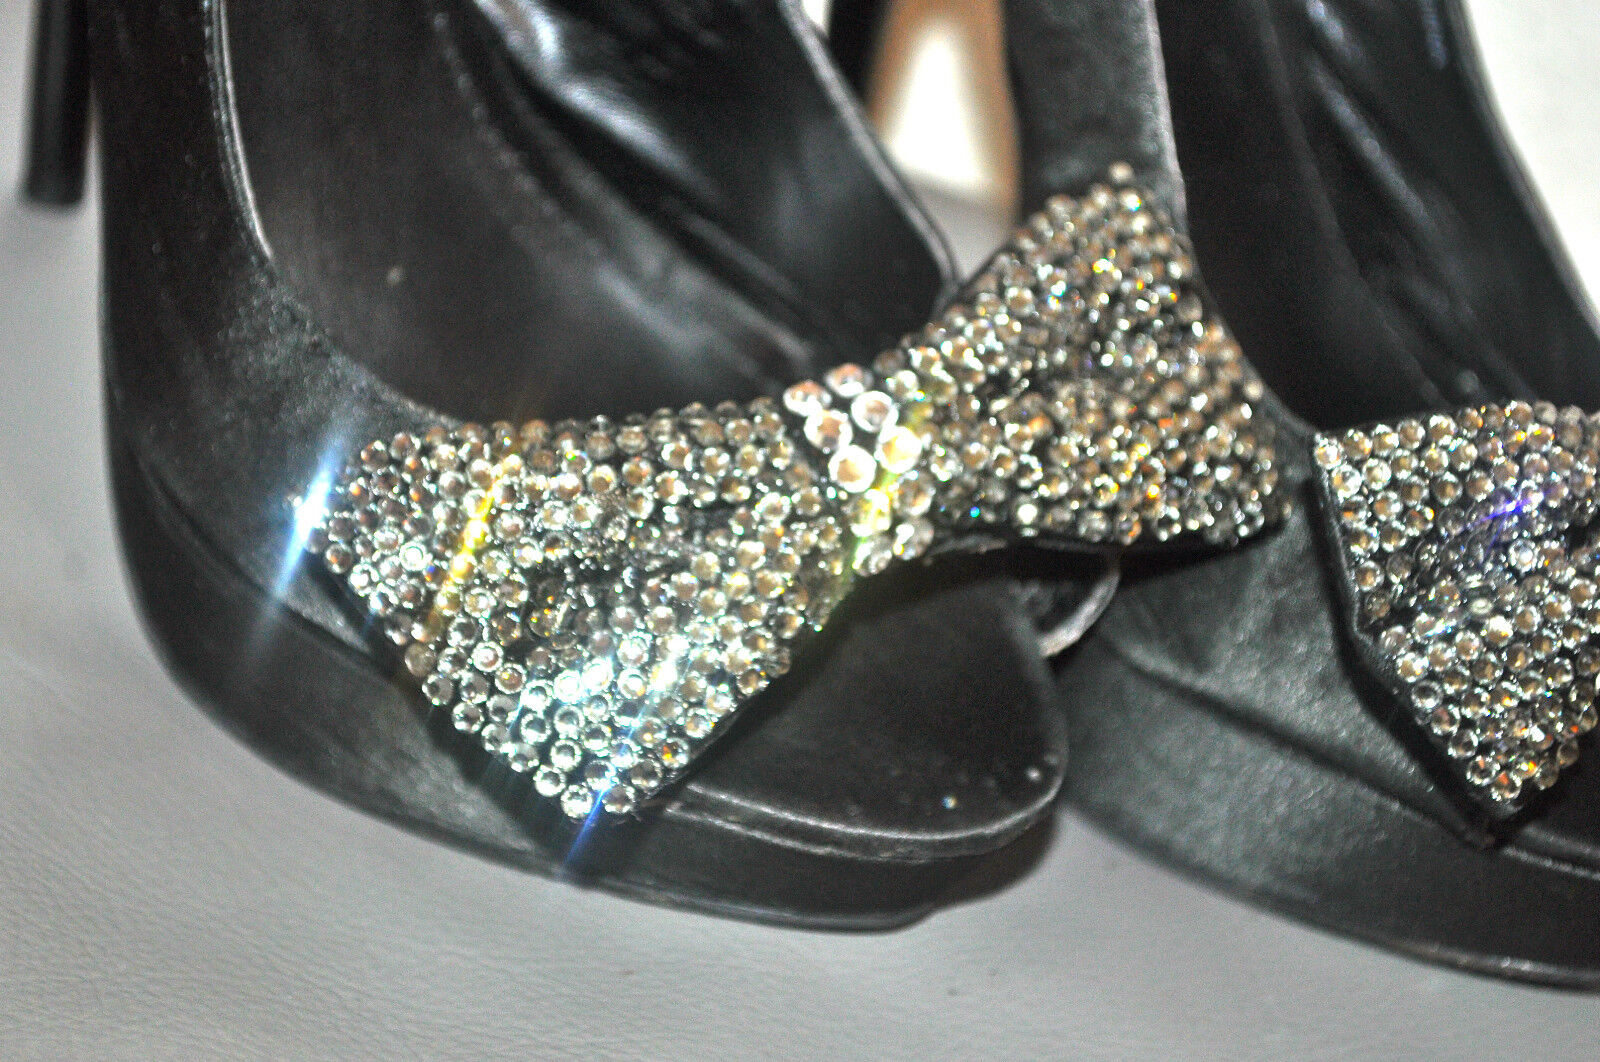 SEXY RARE HAND PLACED SWAROVSKI CRYSTAL BLINGED BOW SLINGBACK PLATFORMS HEELS 8